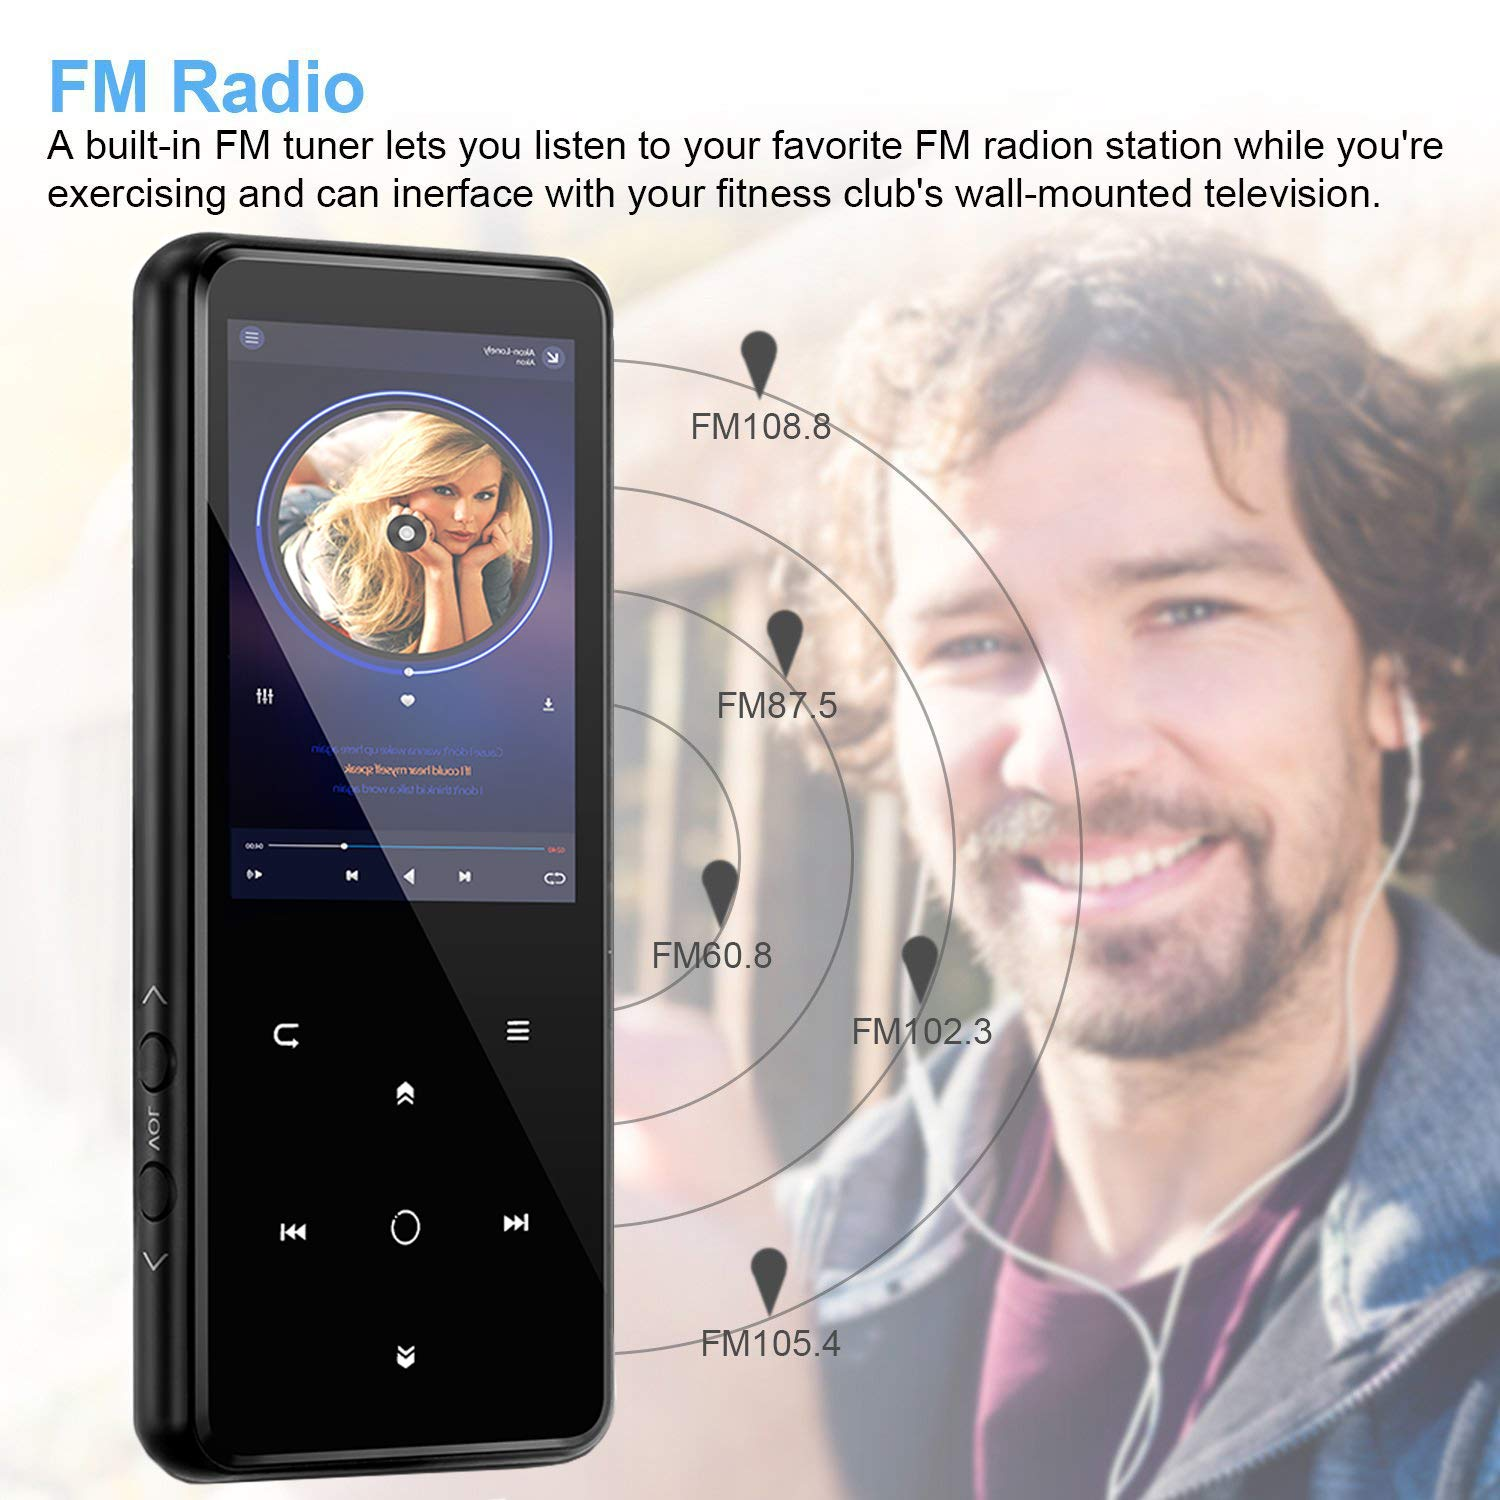 MP3 Player,PELDA Bluetooth MP3 Player,16GB MP3 Player with 2.4'' Large Screen, HiFi Lossless Music Player with Speaker,Touch Buttons,FM Radio/Recorder,16GB Come with a Wired Headphone by Pelda (Image #8)